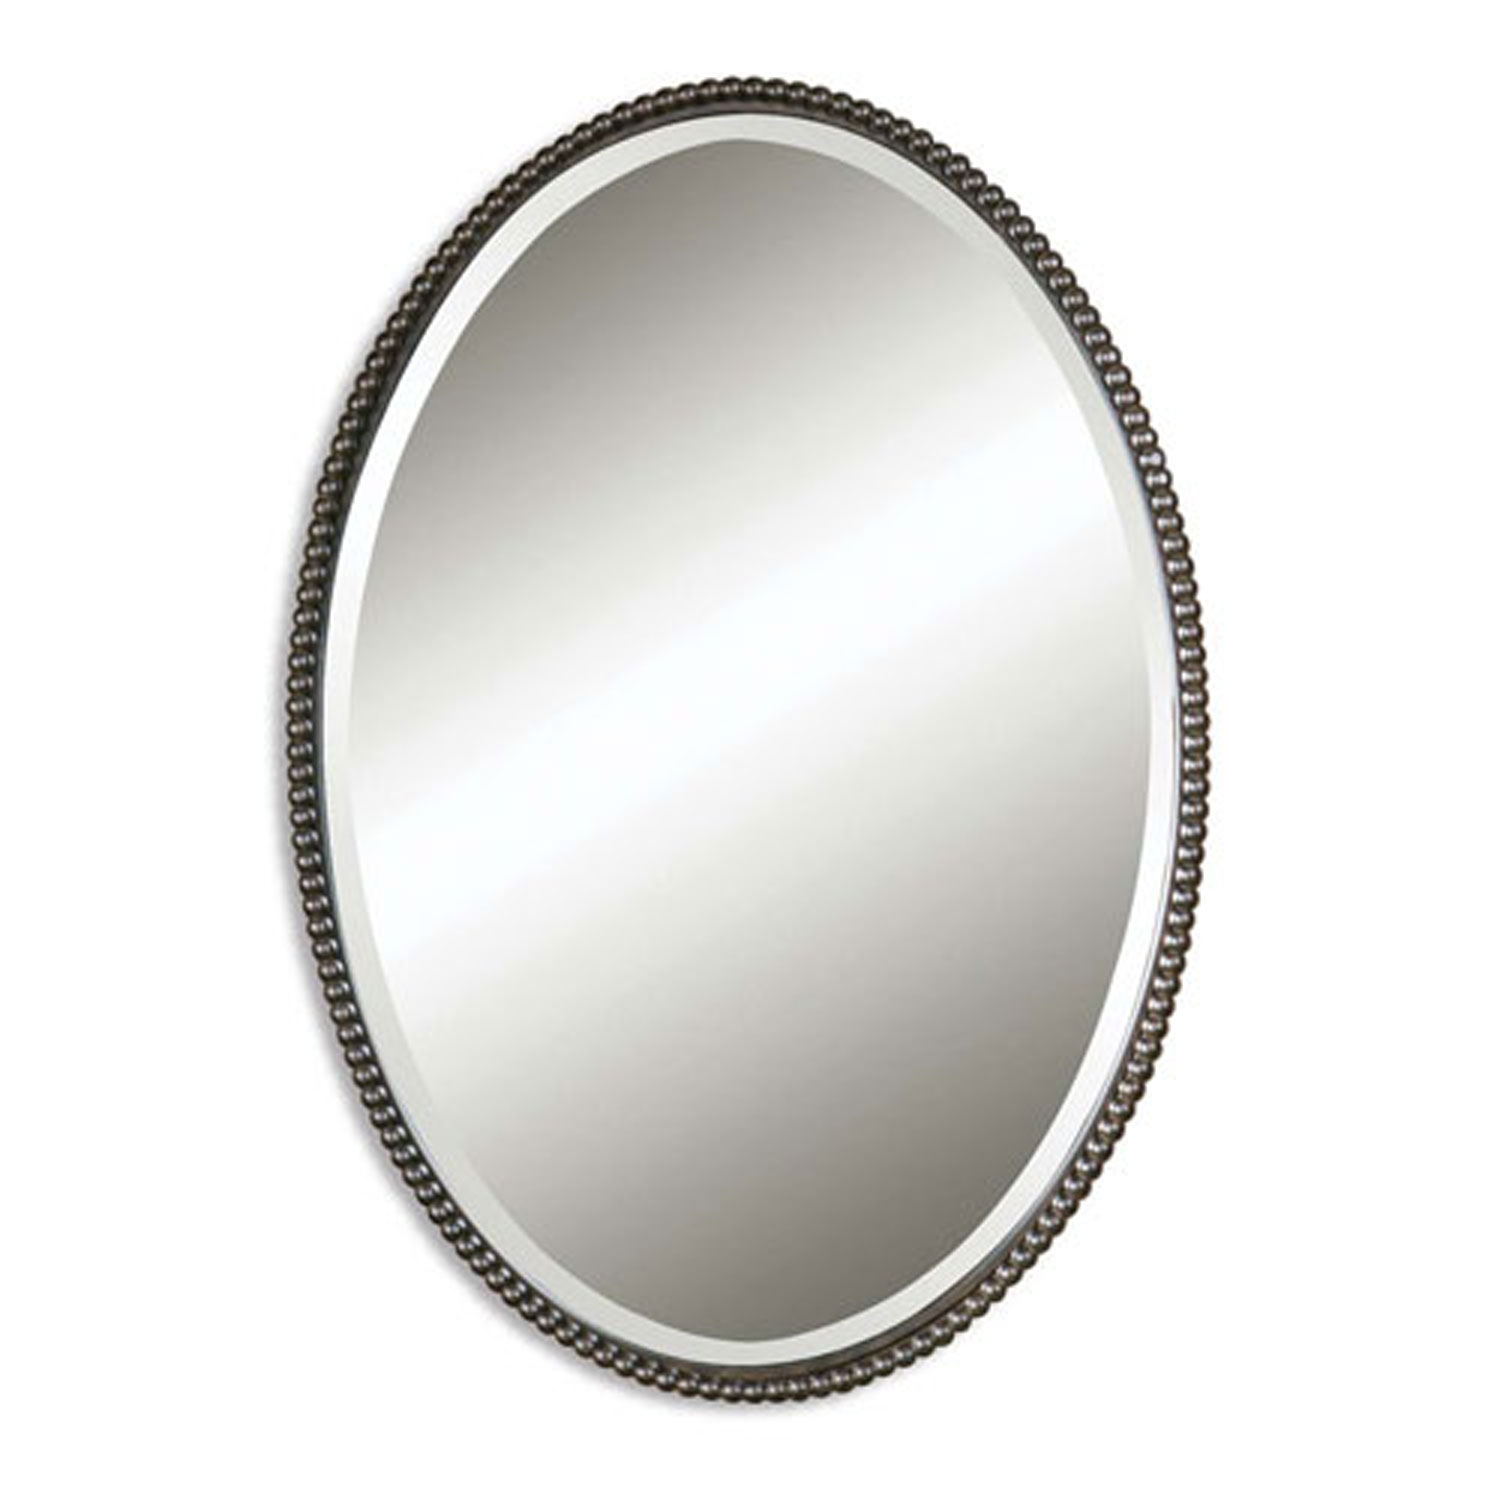 Oval Wall Mirrors 270 Kitchen Bathroom Frameless Vanity Options Inside Large Oval Mirrors (Image 10 of 15)